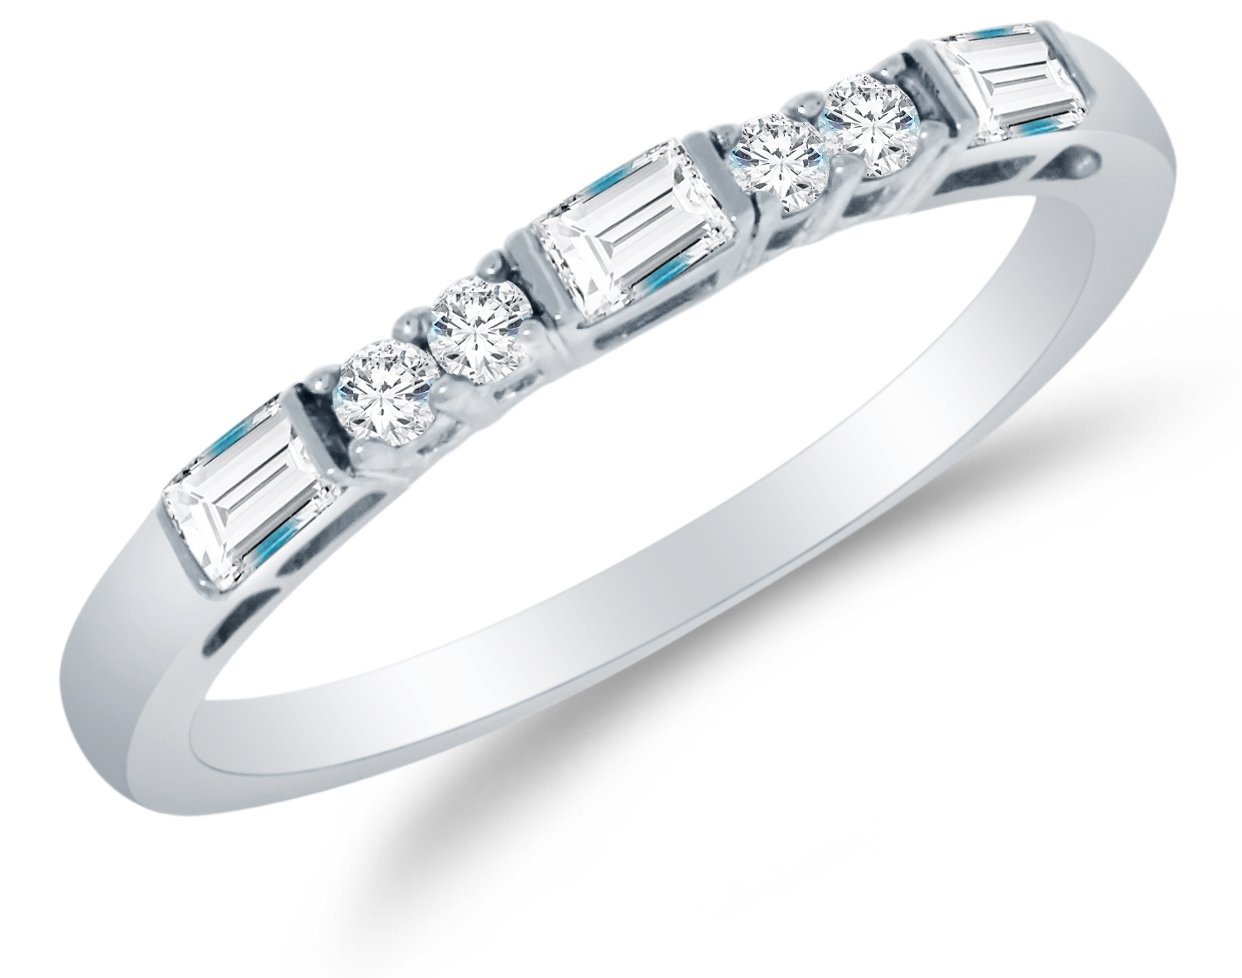 Size 8 - Solid 14K White Gold Round Brilliant Cut & Baguette Highest Quality CZ Cubic Zirconia Ladies Womens Wedding Band or Anniversary Ring 1/2 cttw.